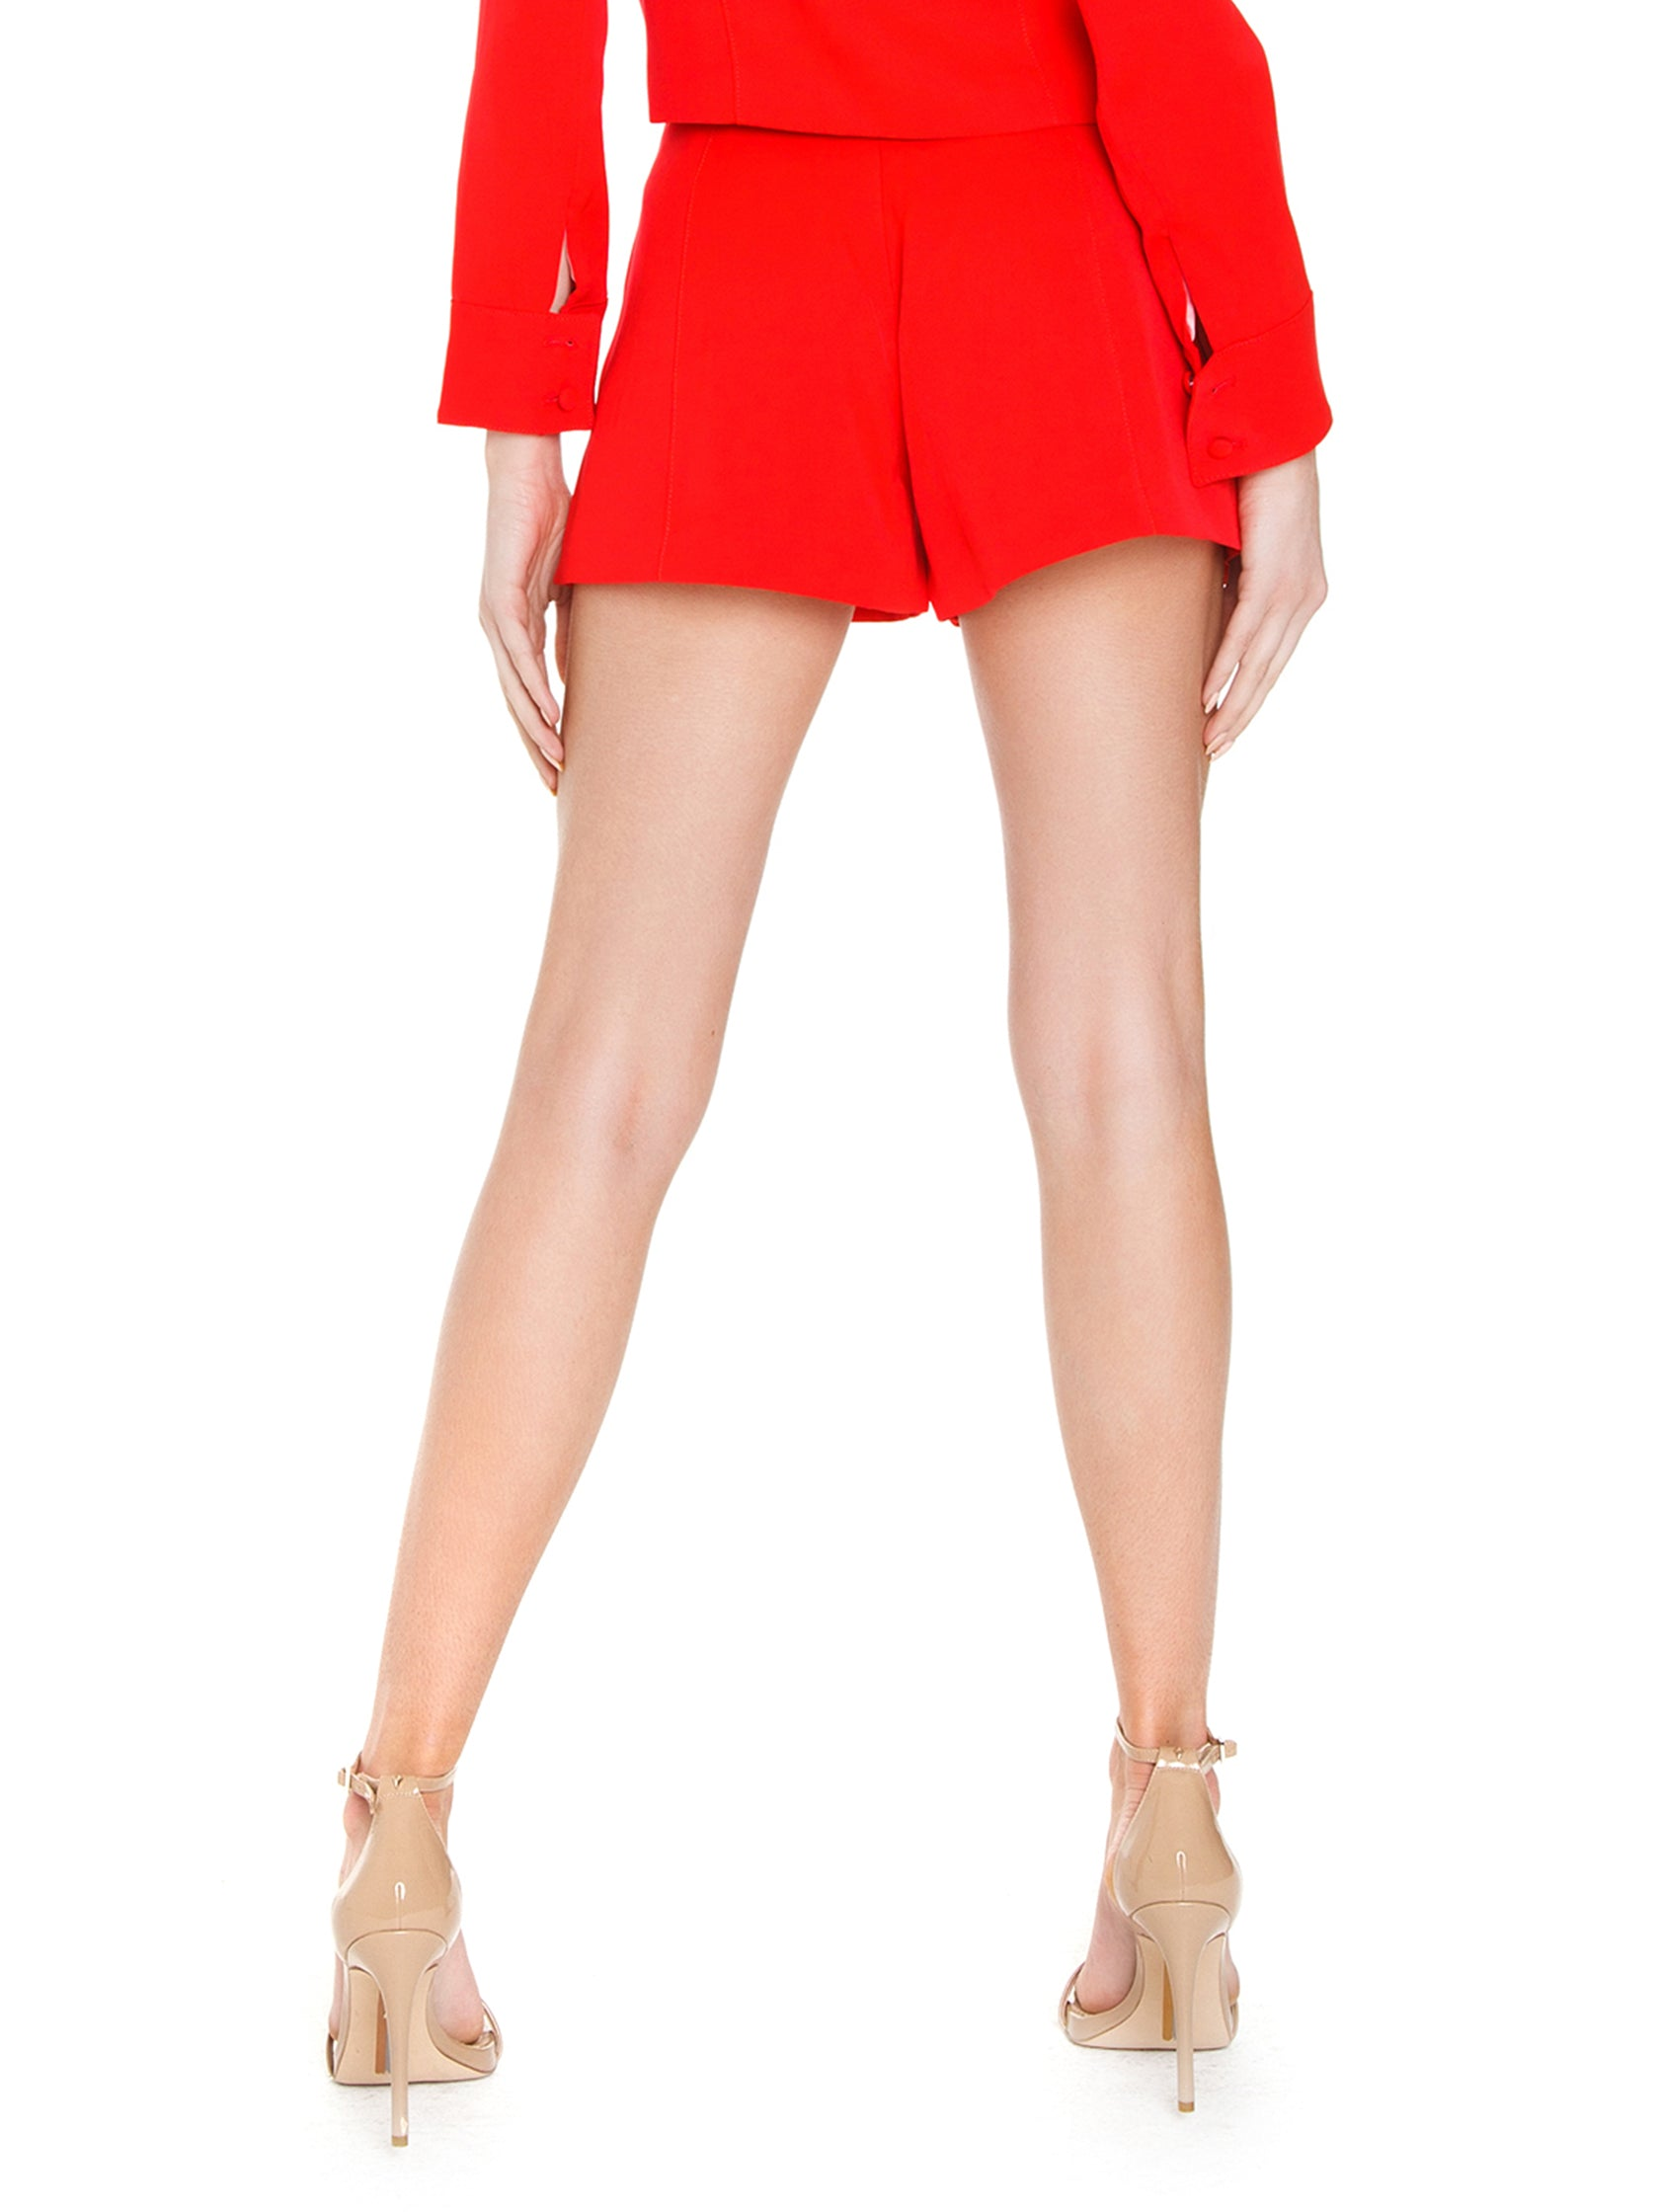 Women outfit in a shorts rental from FLETCH called Brooklyn High-waisted Shorts